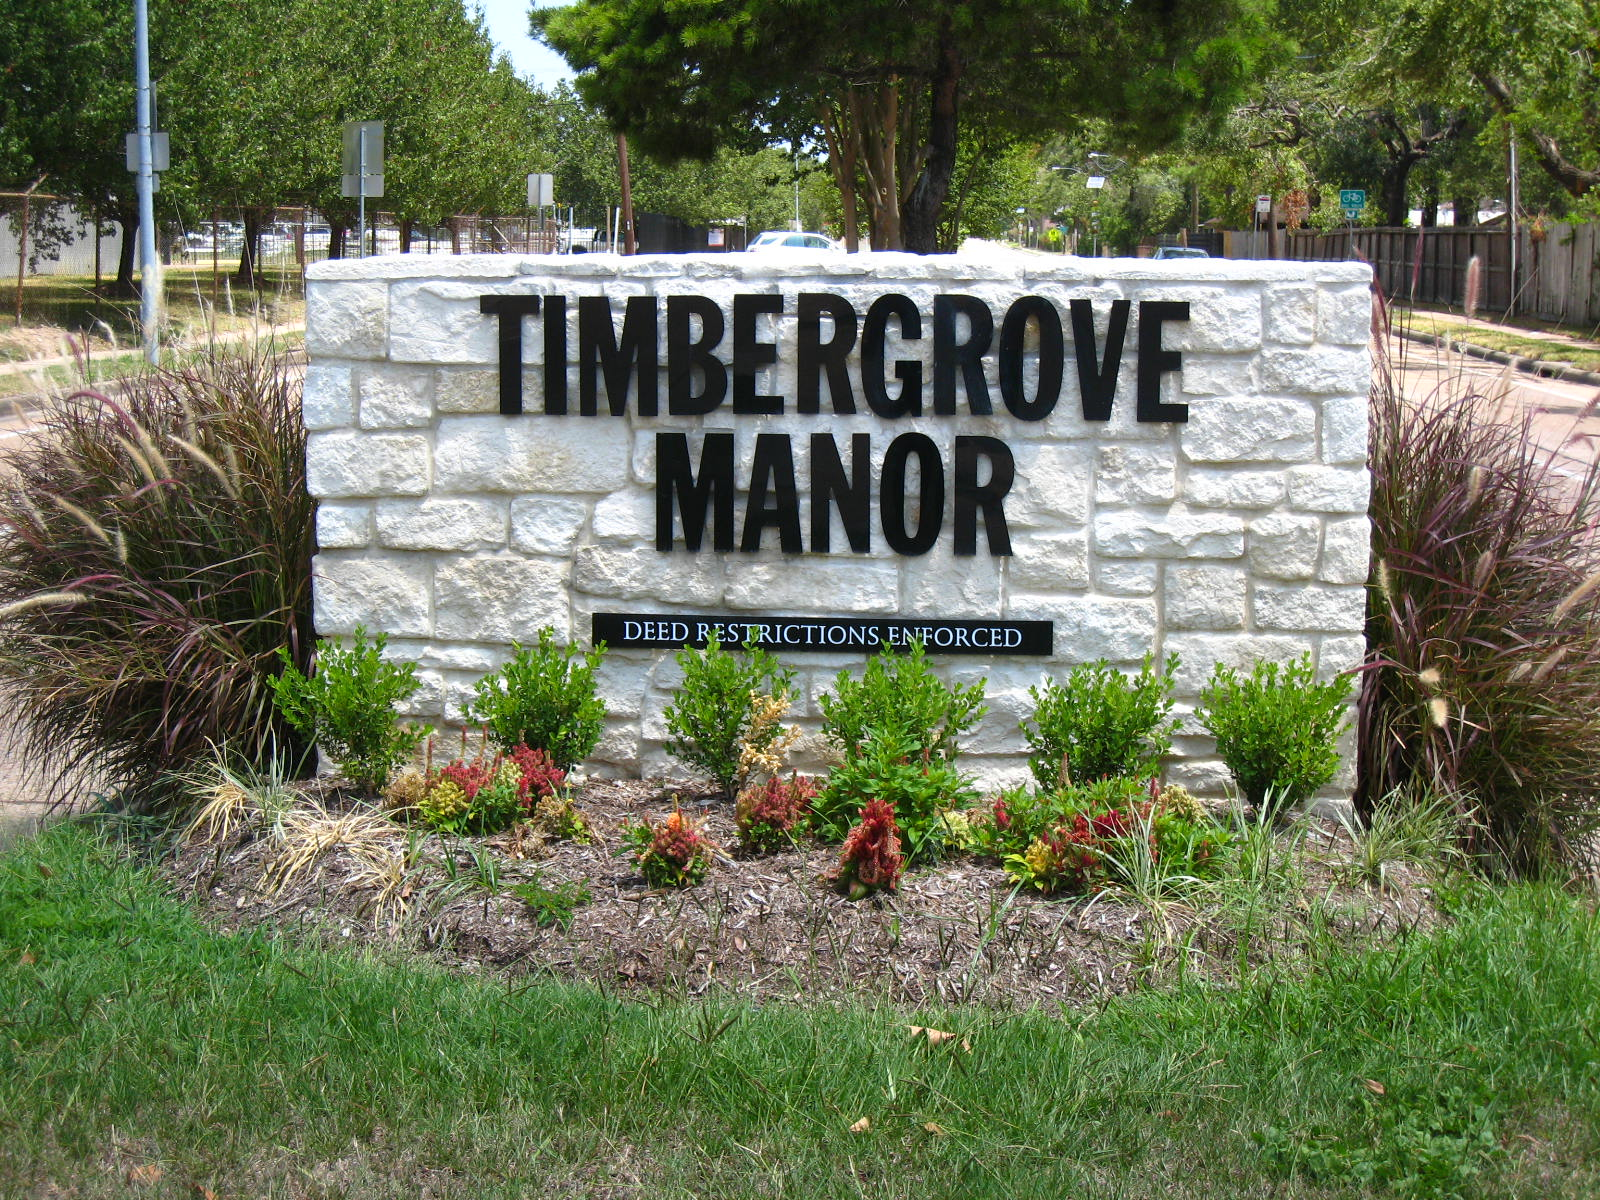 Timbergrove_Manor_sign.JPG